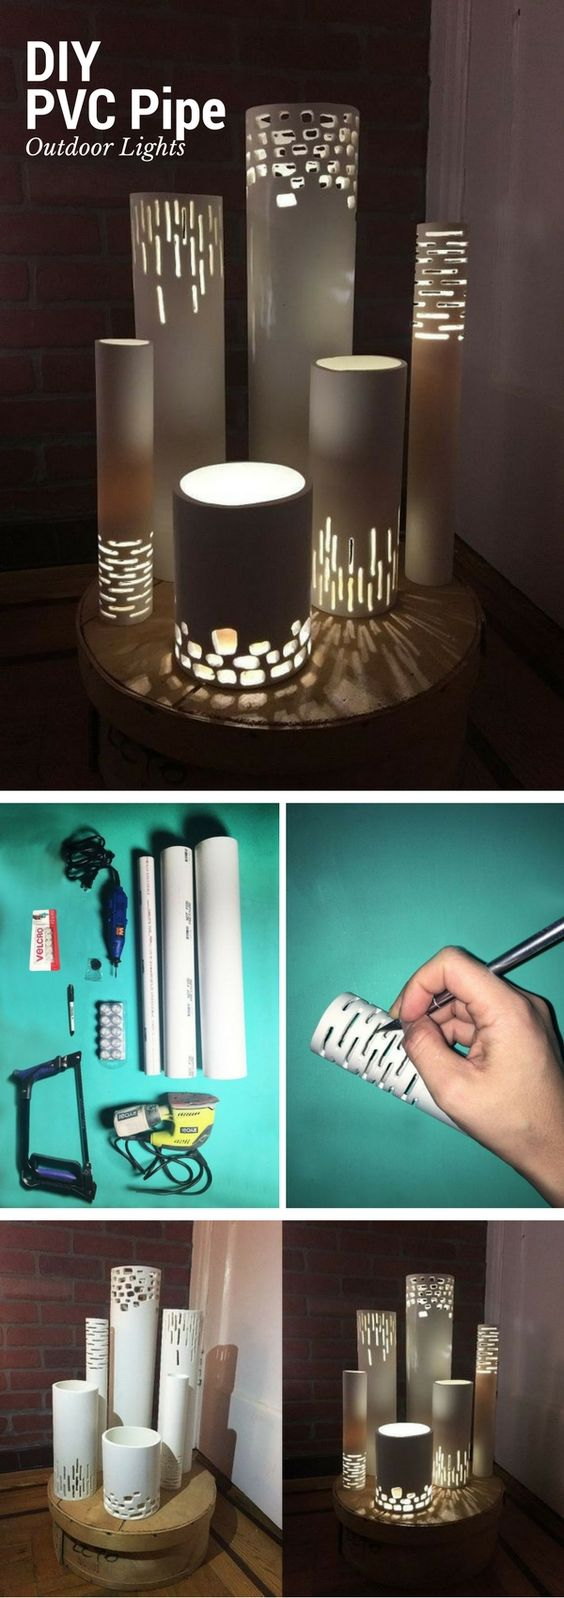 PVC Pipe Lights.